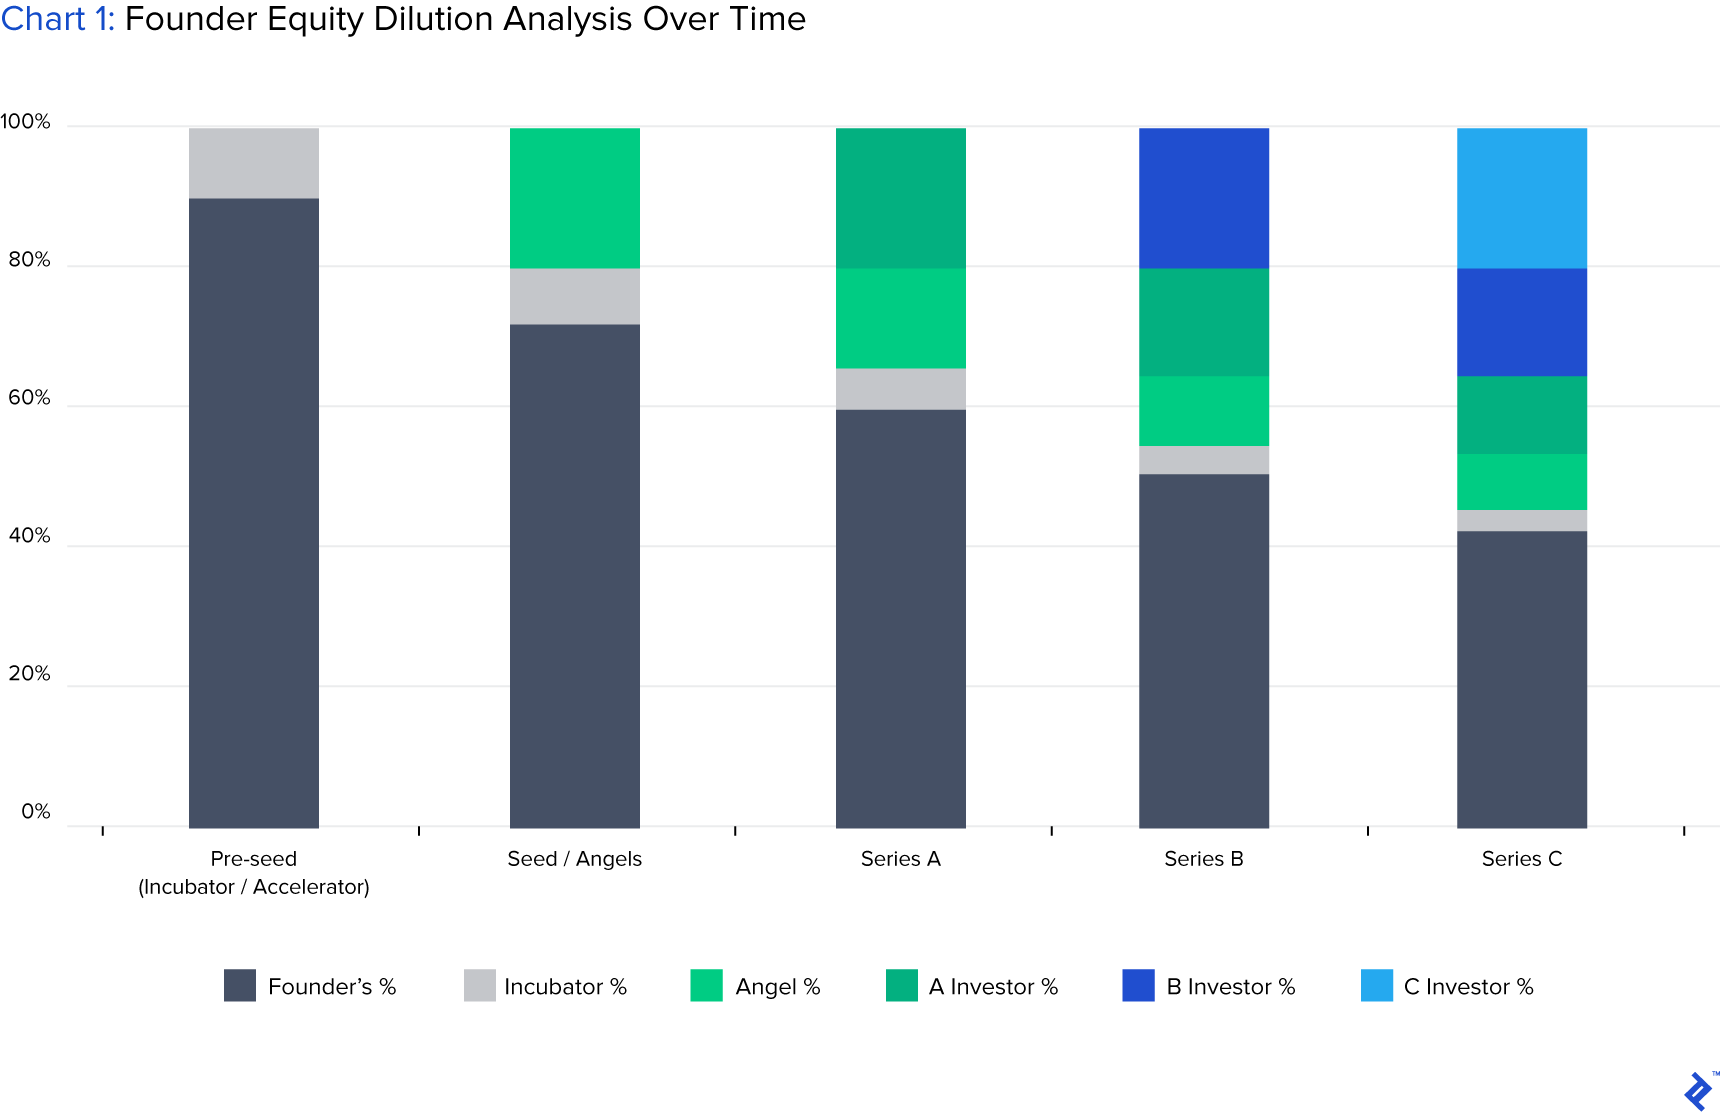 chart of founder equity dilution analysis over time